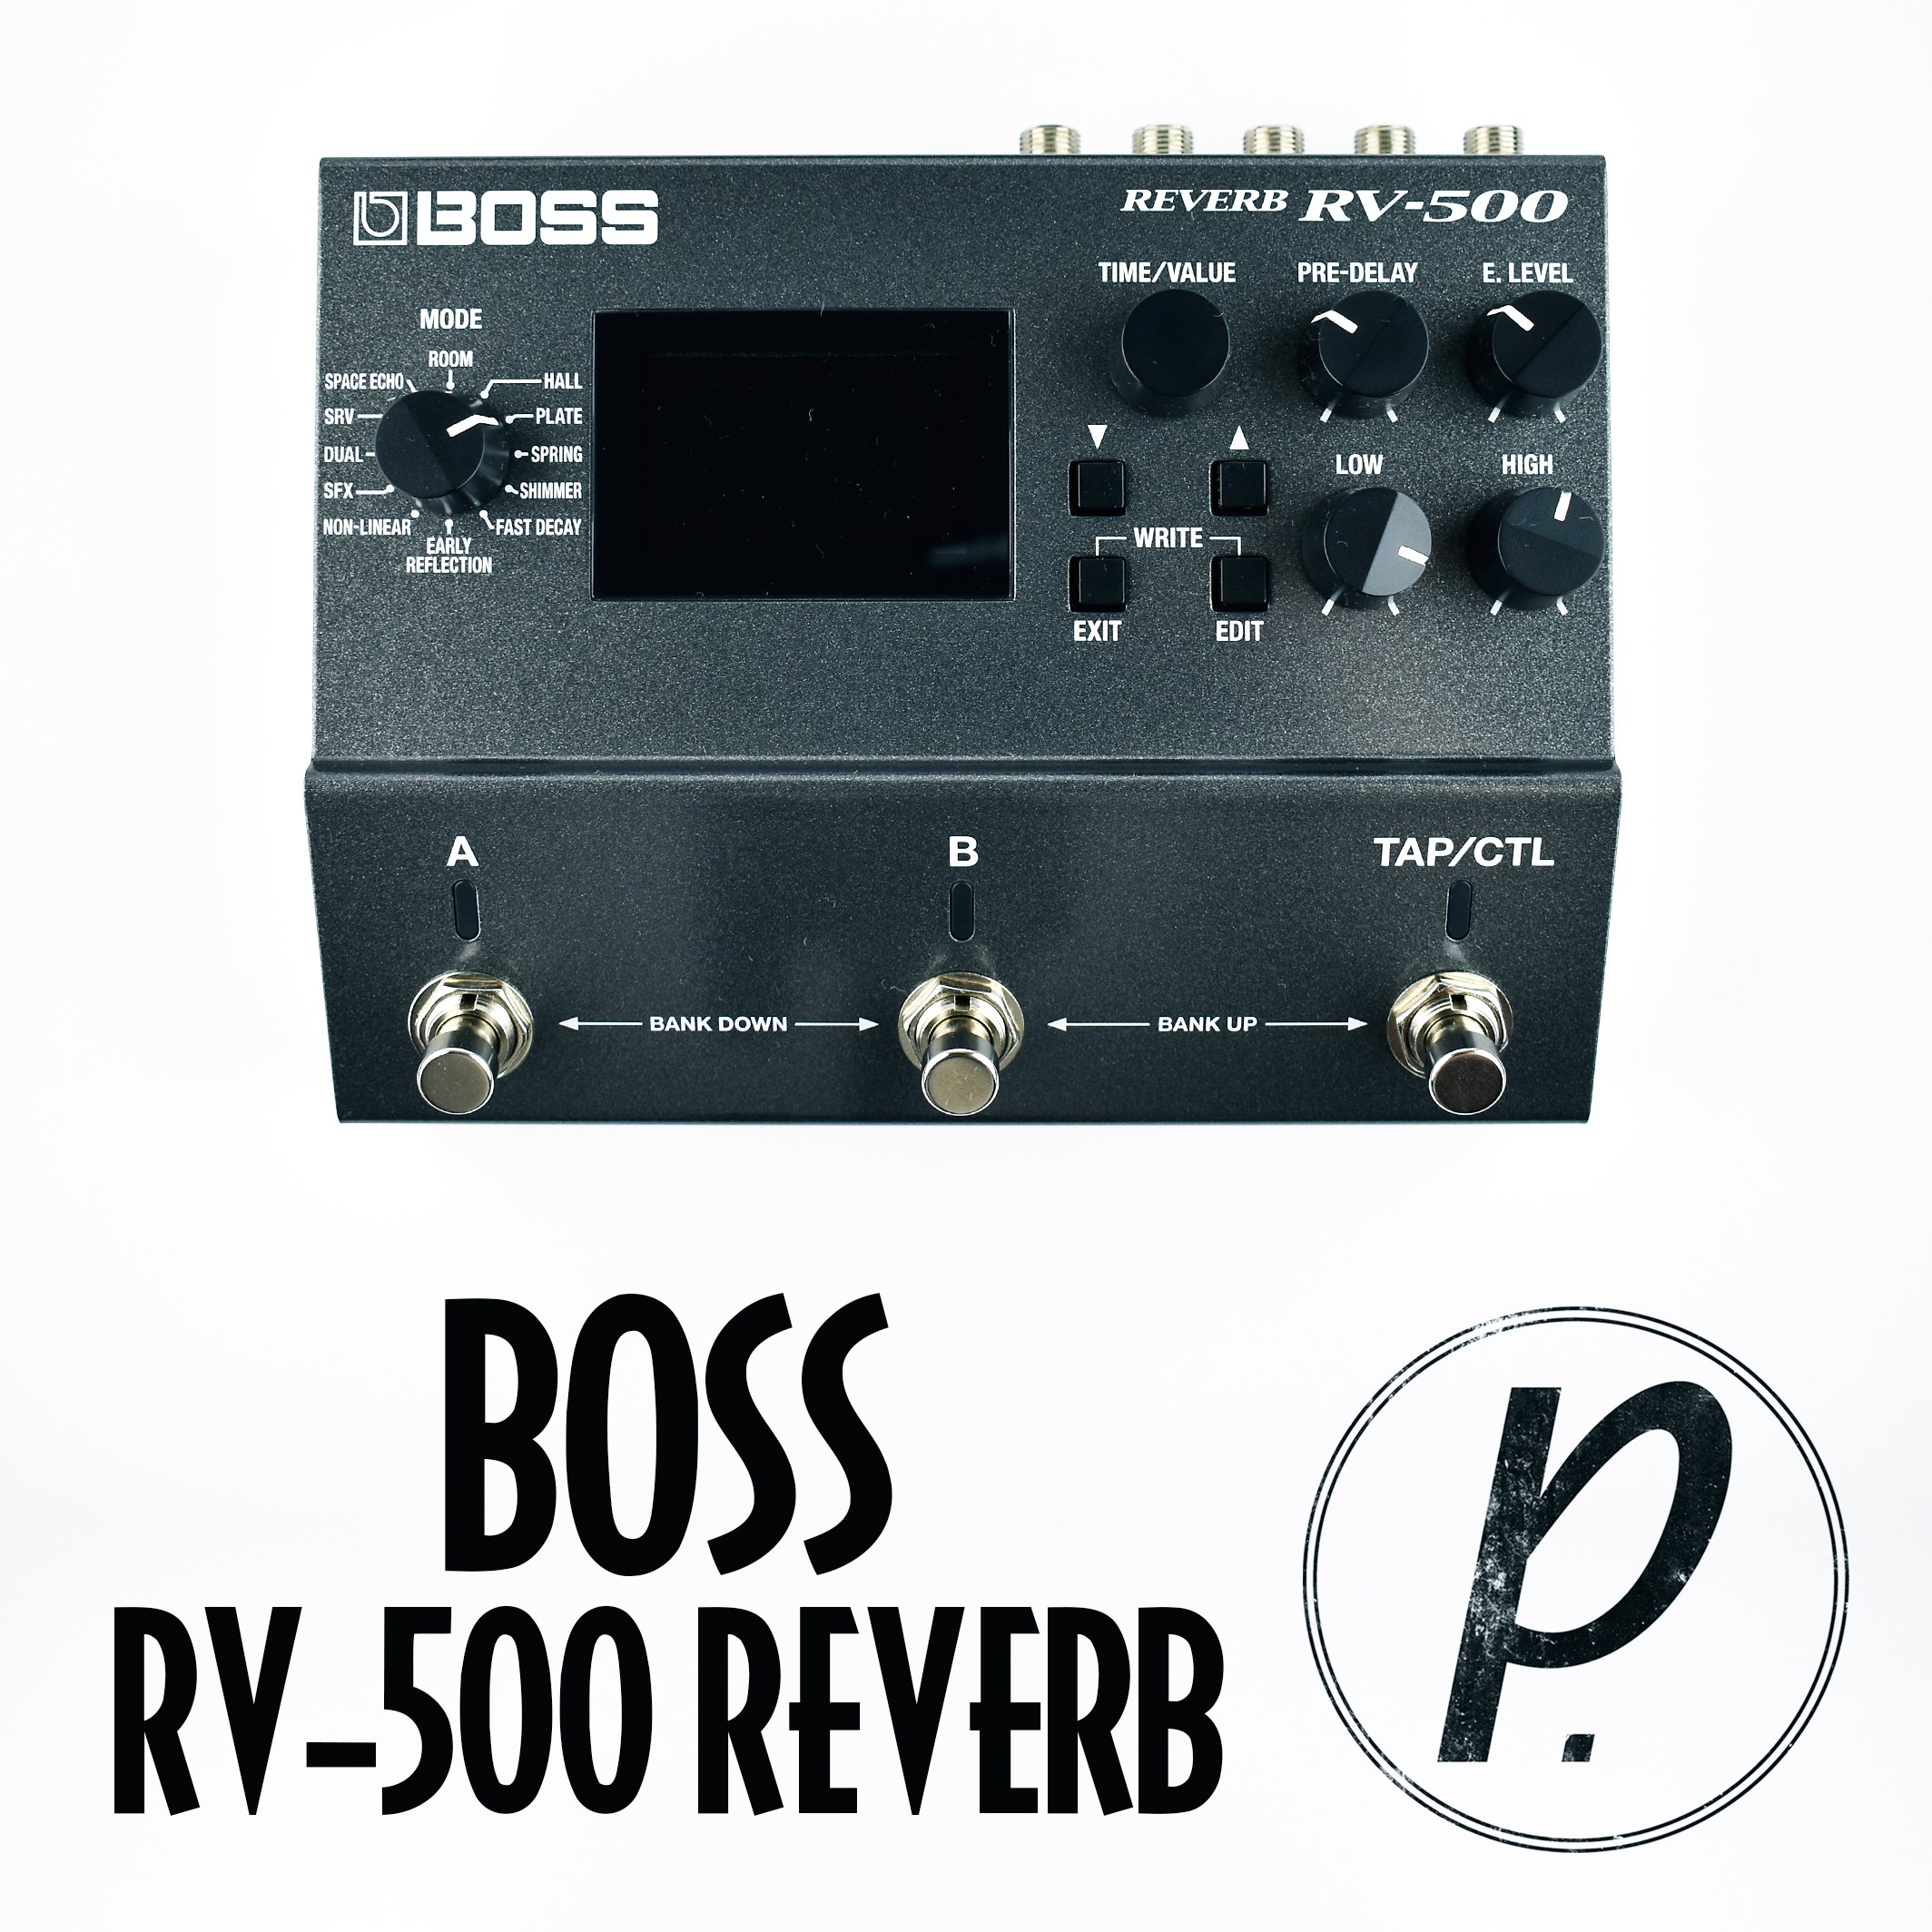 Bbe Wah Class A Circuit Design Pedal Icon Music Boss Rv 500 Reverb Multi Effect Of The Day